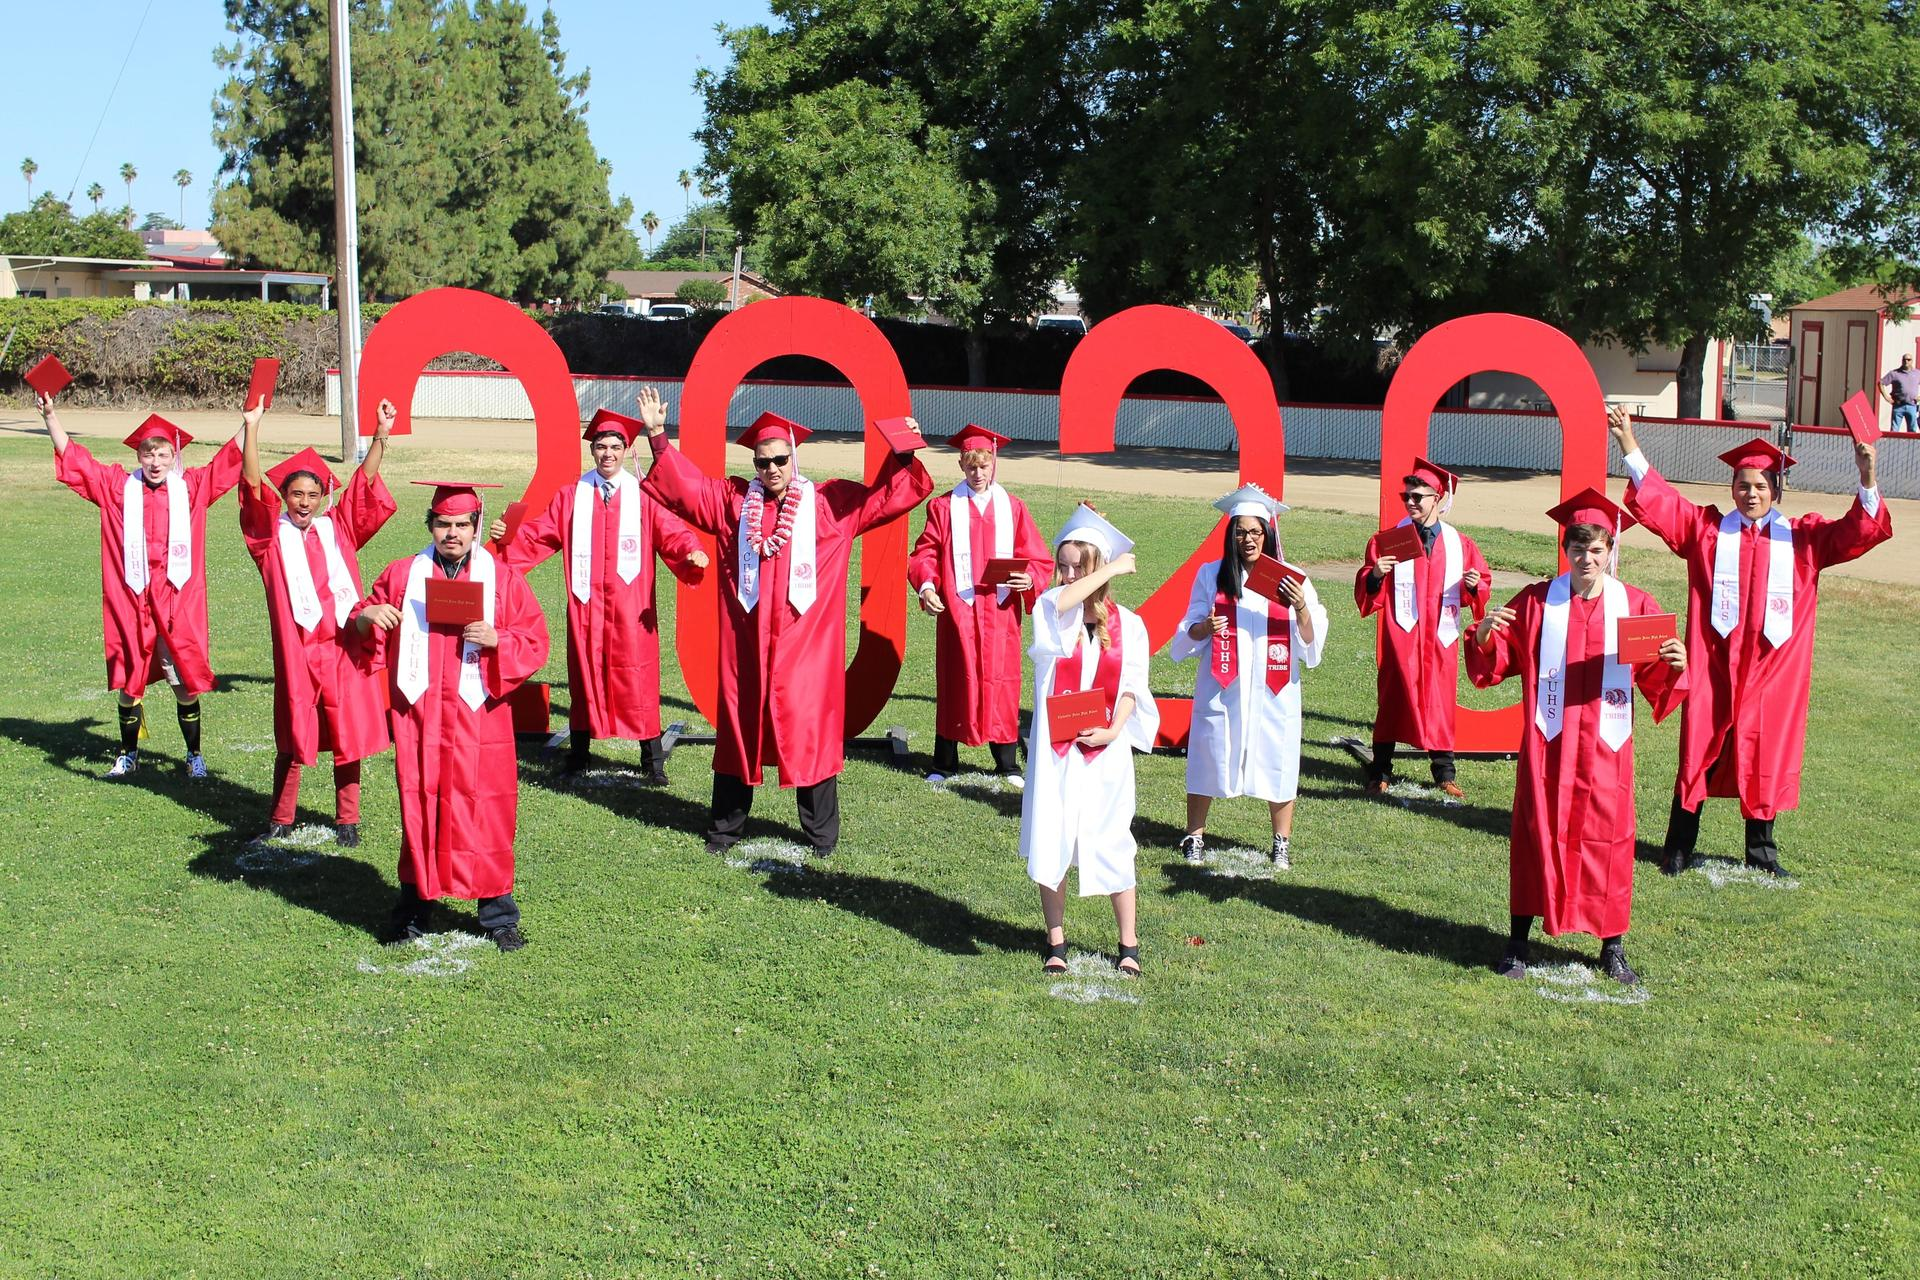 Left to right, Blake Kazynski, Lawrence Luna, Roy Martinez, Jared Guerrero, Vincent Velasquez, Cody Harrell, Zoe Rasmussen, Frances Ceja, Alfredo Luna, Andrew Castaneda, and Lyzander Campos turning their tassels